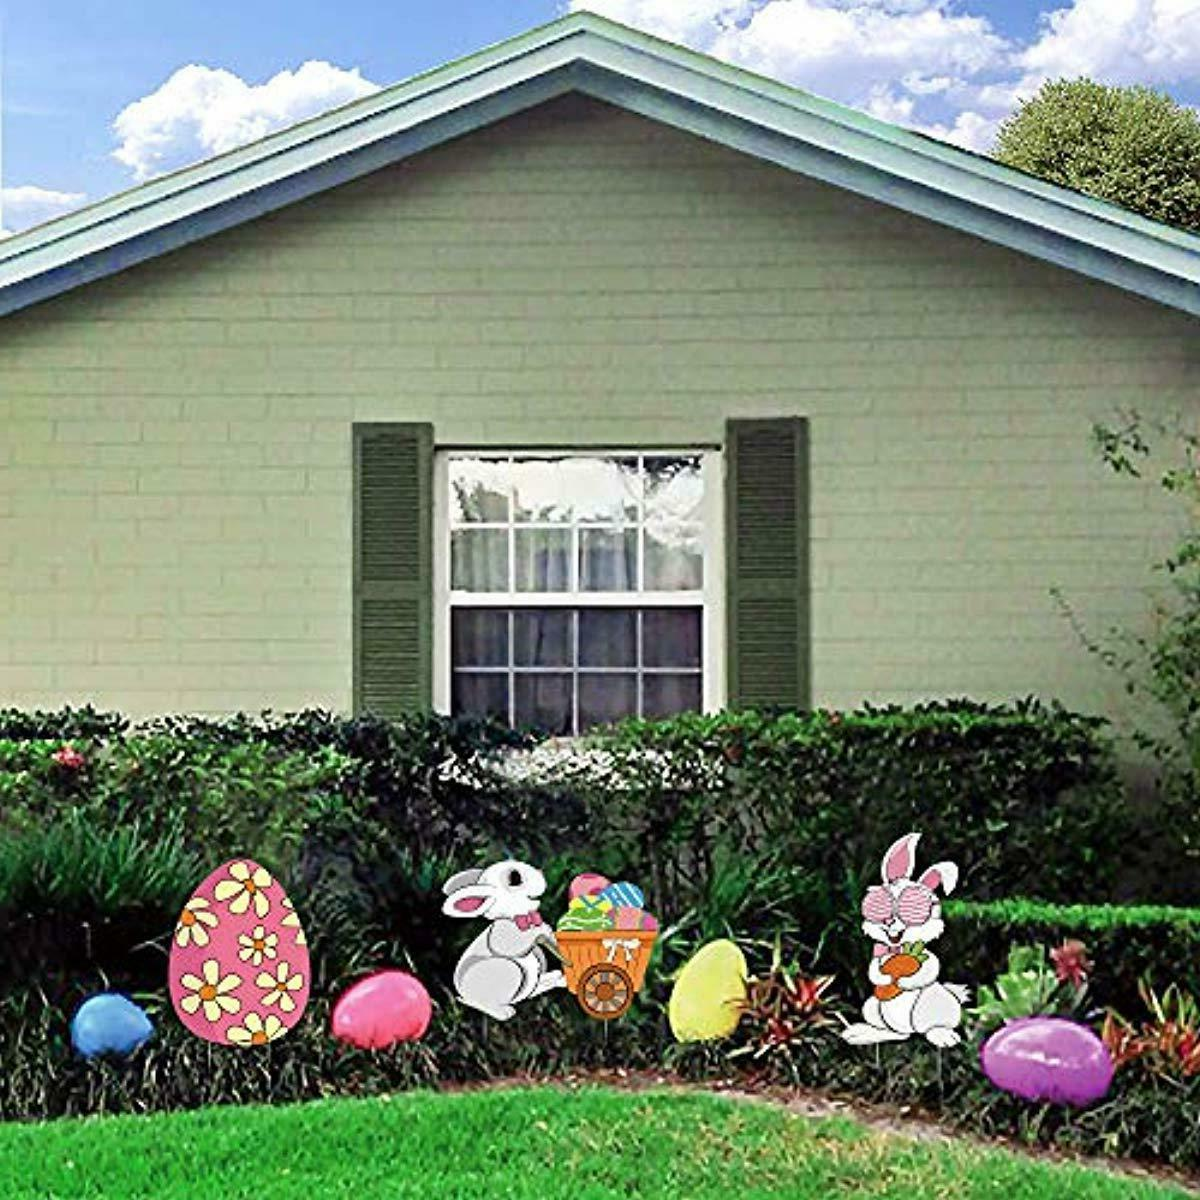 Ivenf Easter Decorations Outdoor, 3ct Bunny Eggs Yard with